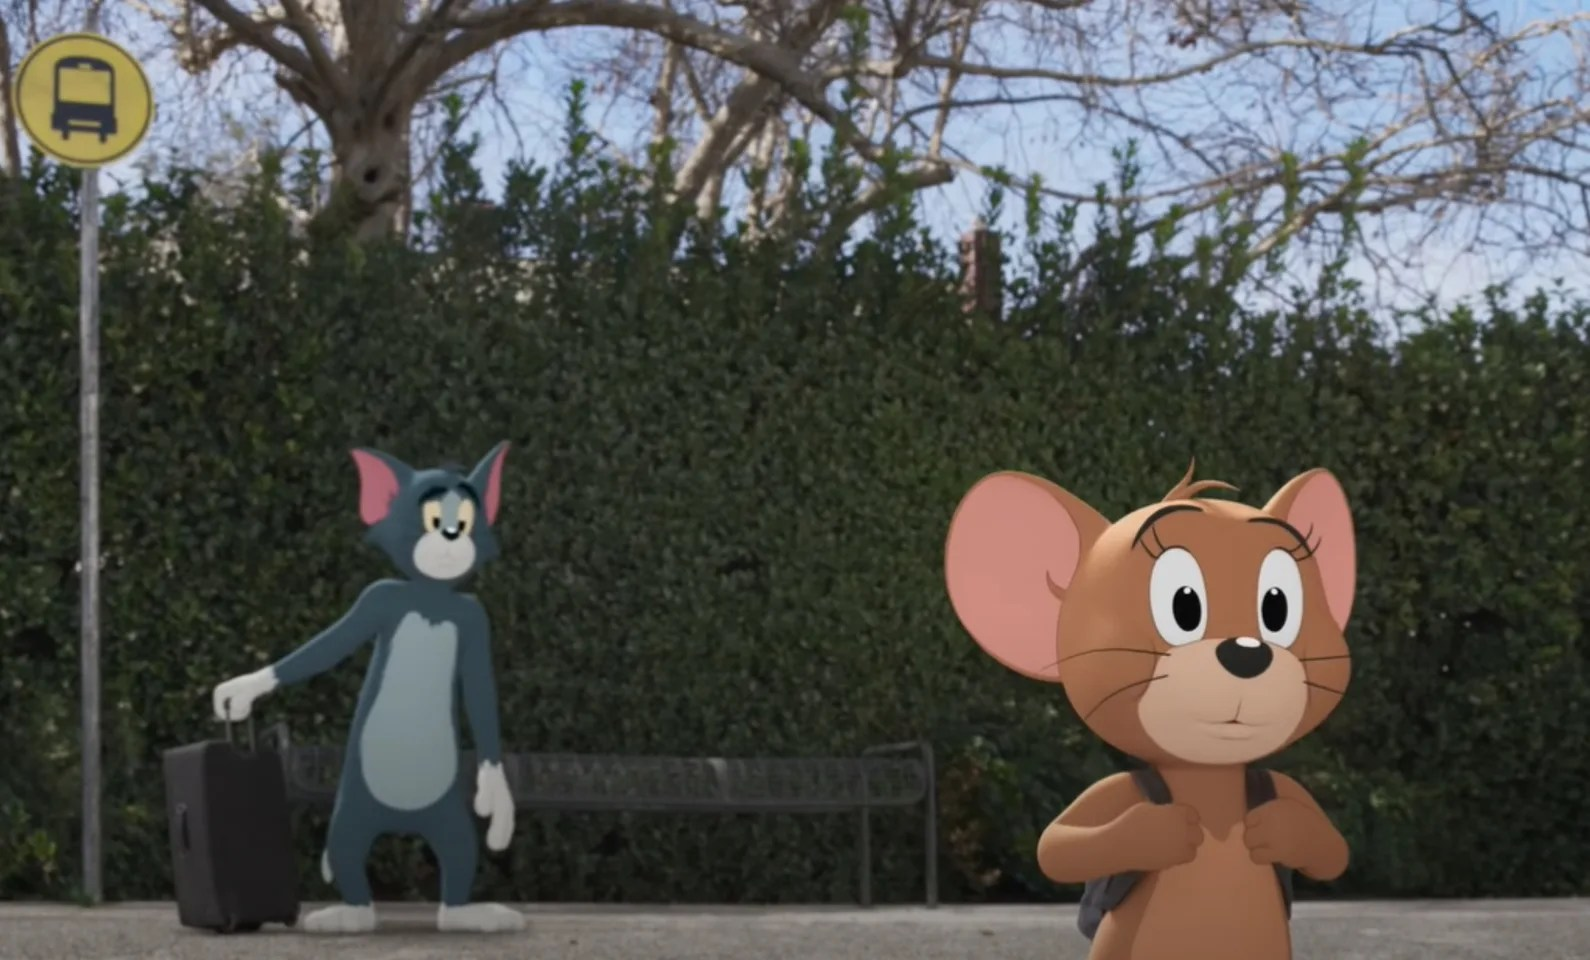 The Tom Jerry Movie Trailer Is Here To Ruin Your Childhood Memories Entertainment